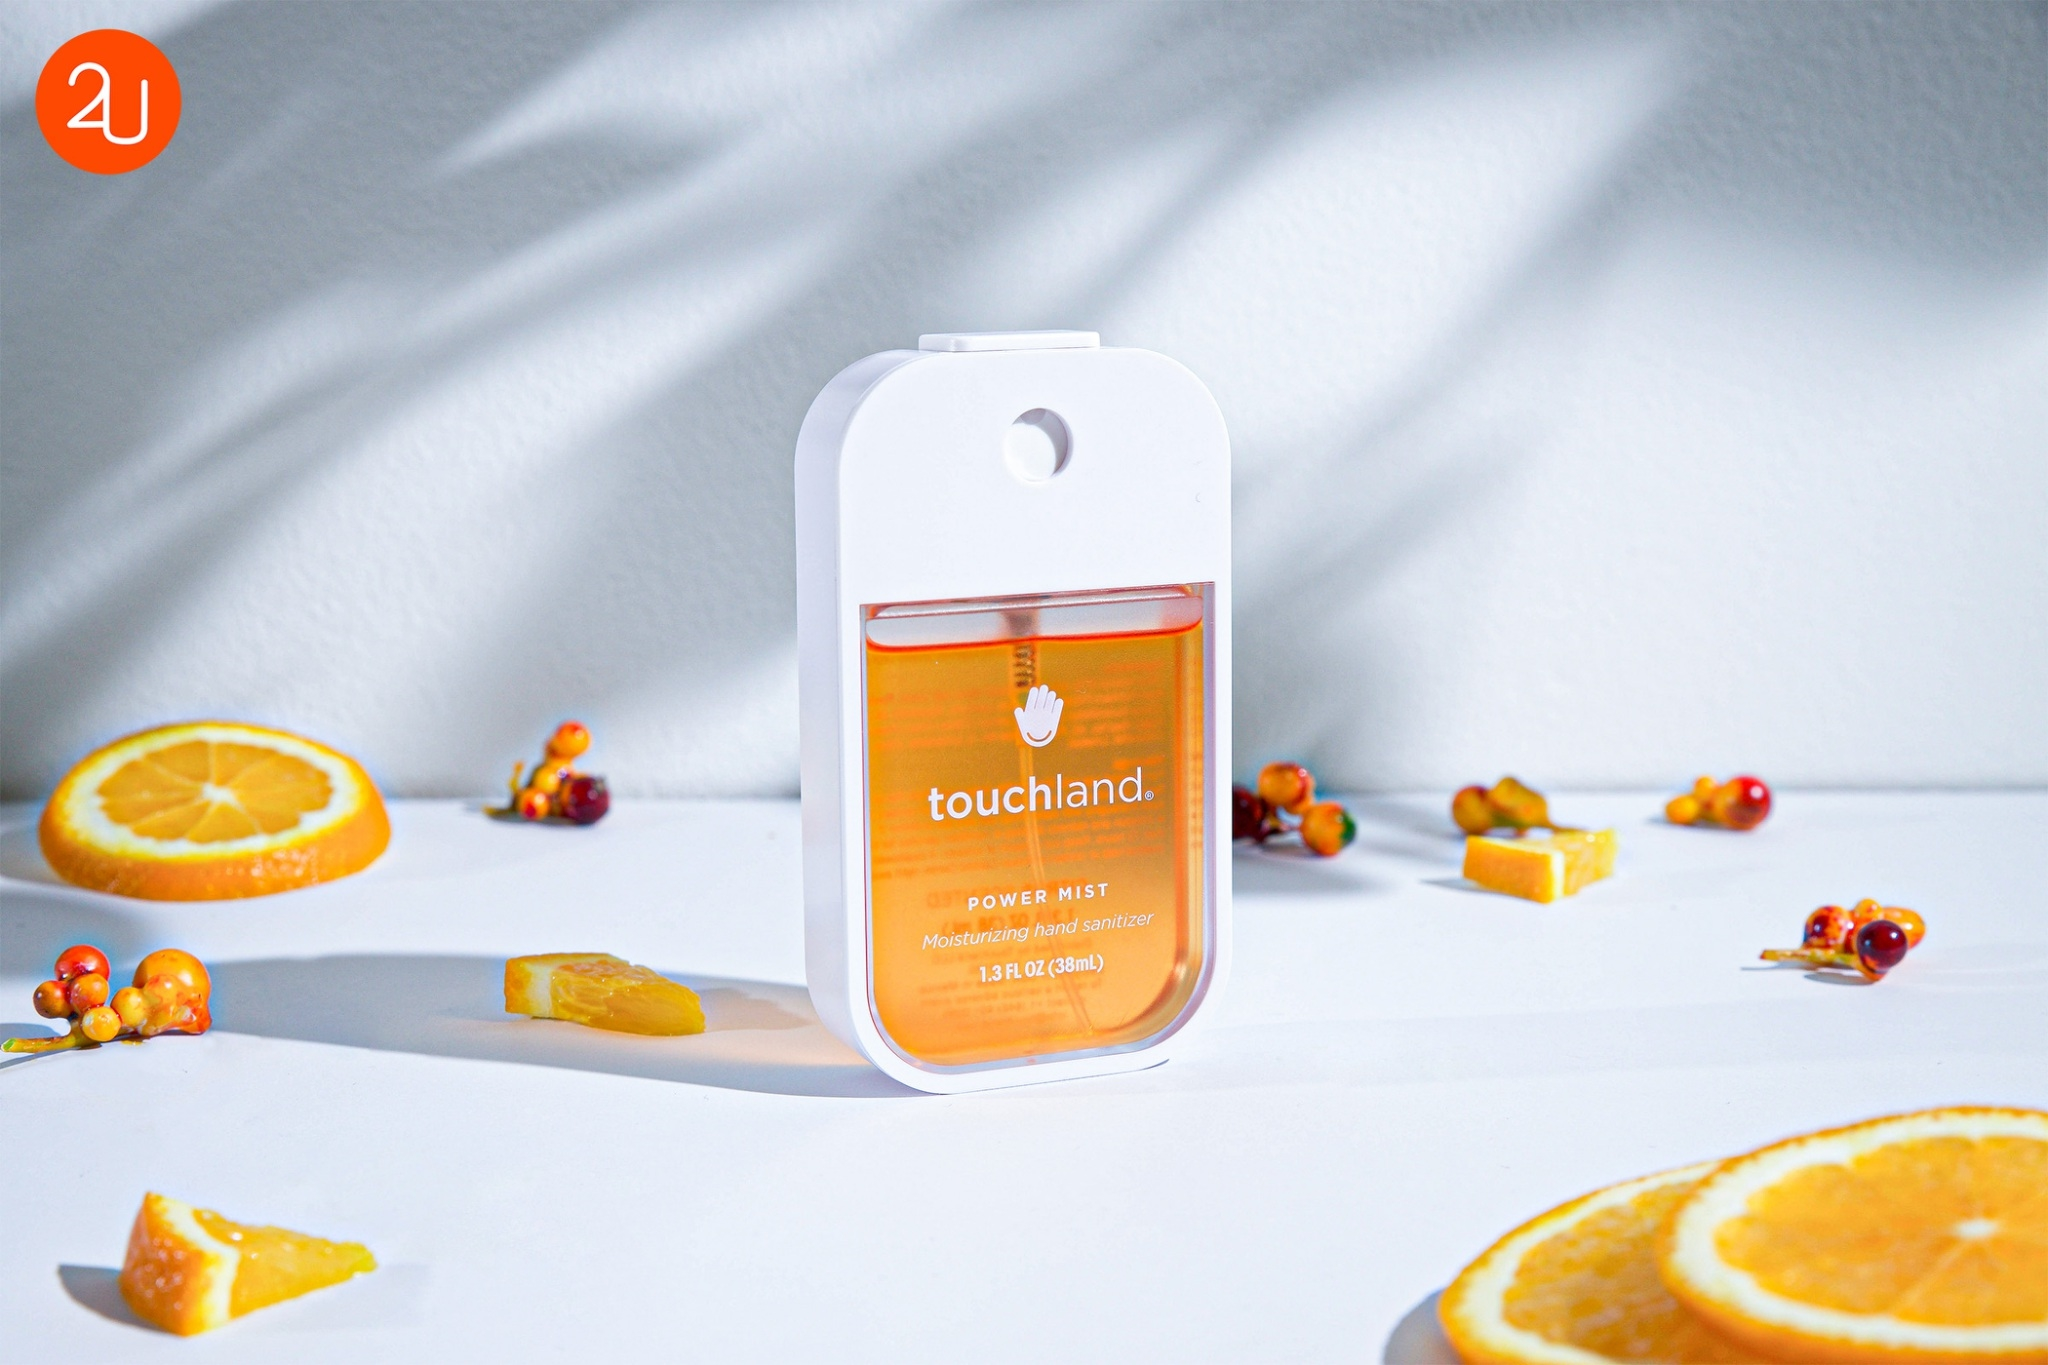 Touchland Power Mist Citrus